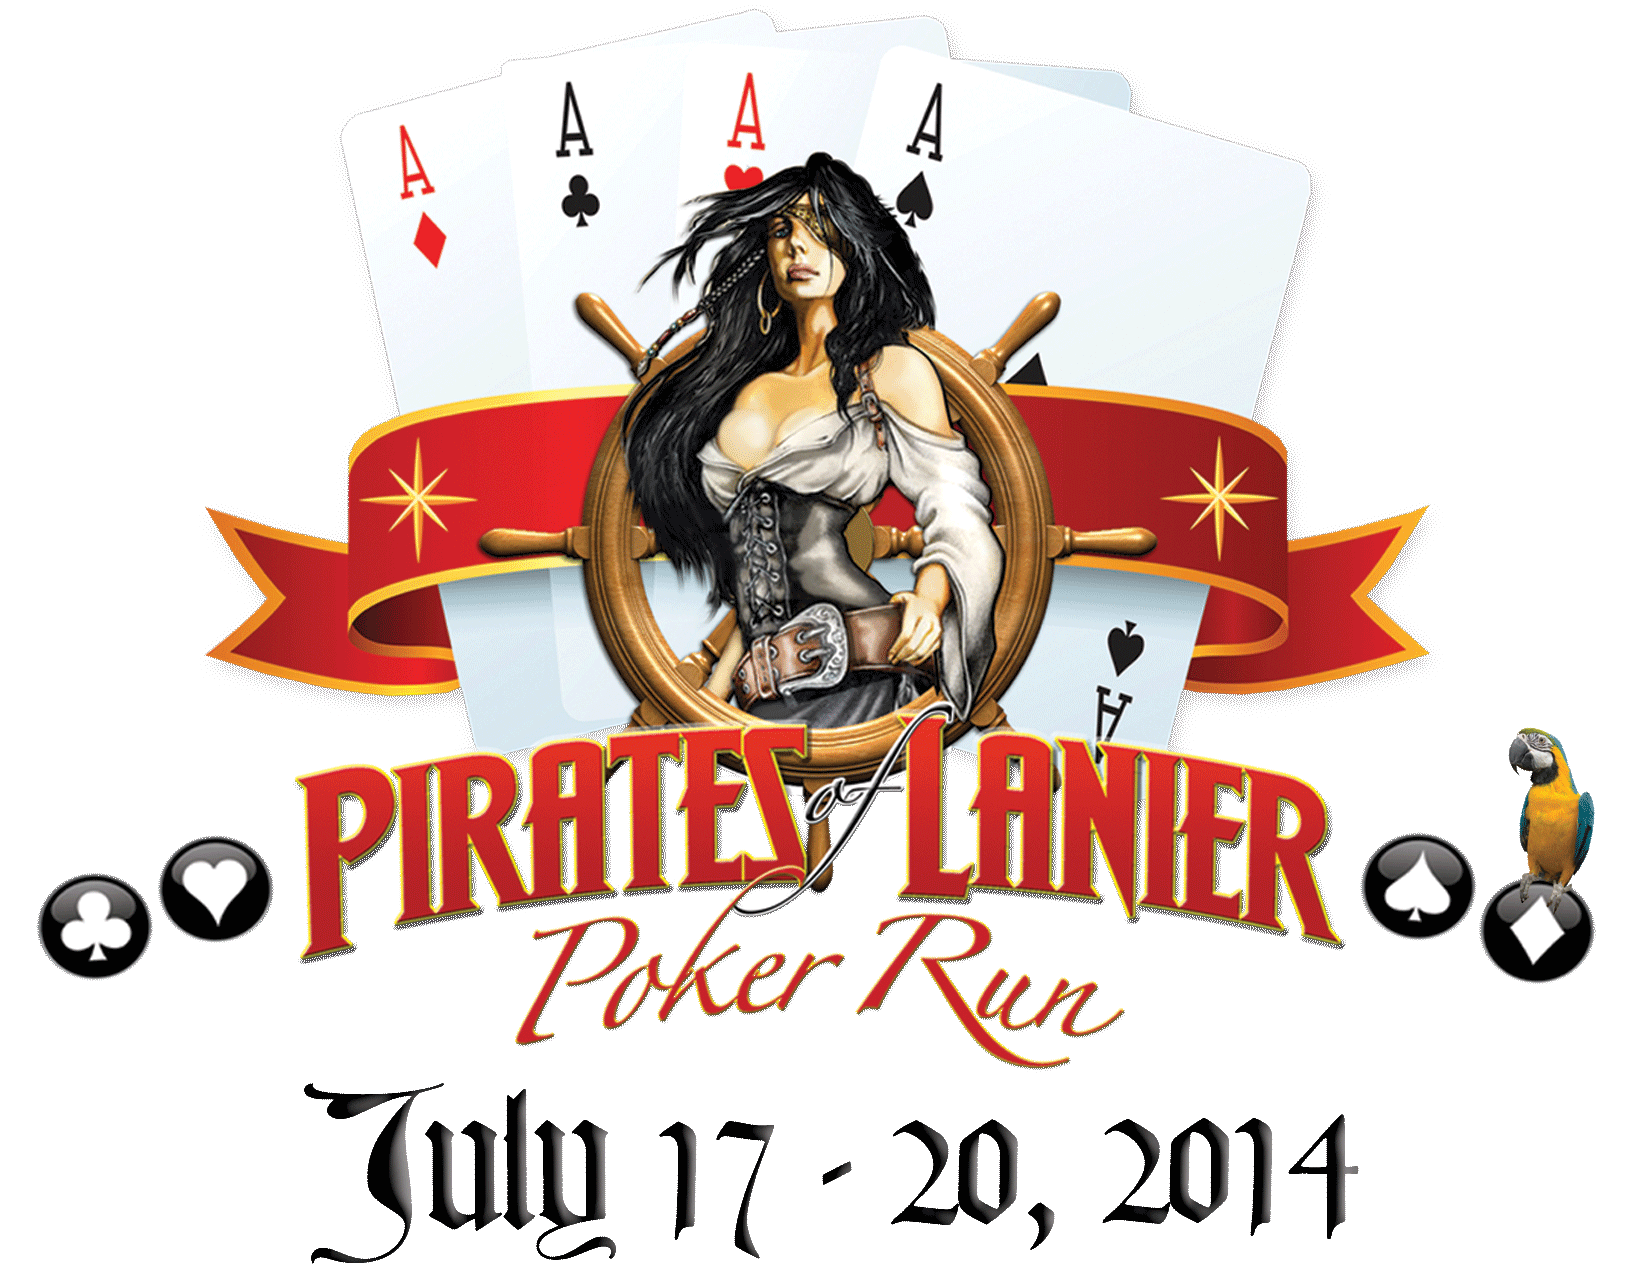 Lake Lanier Poker Run 2014